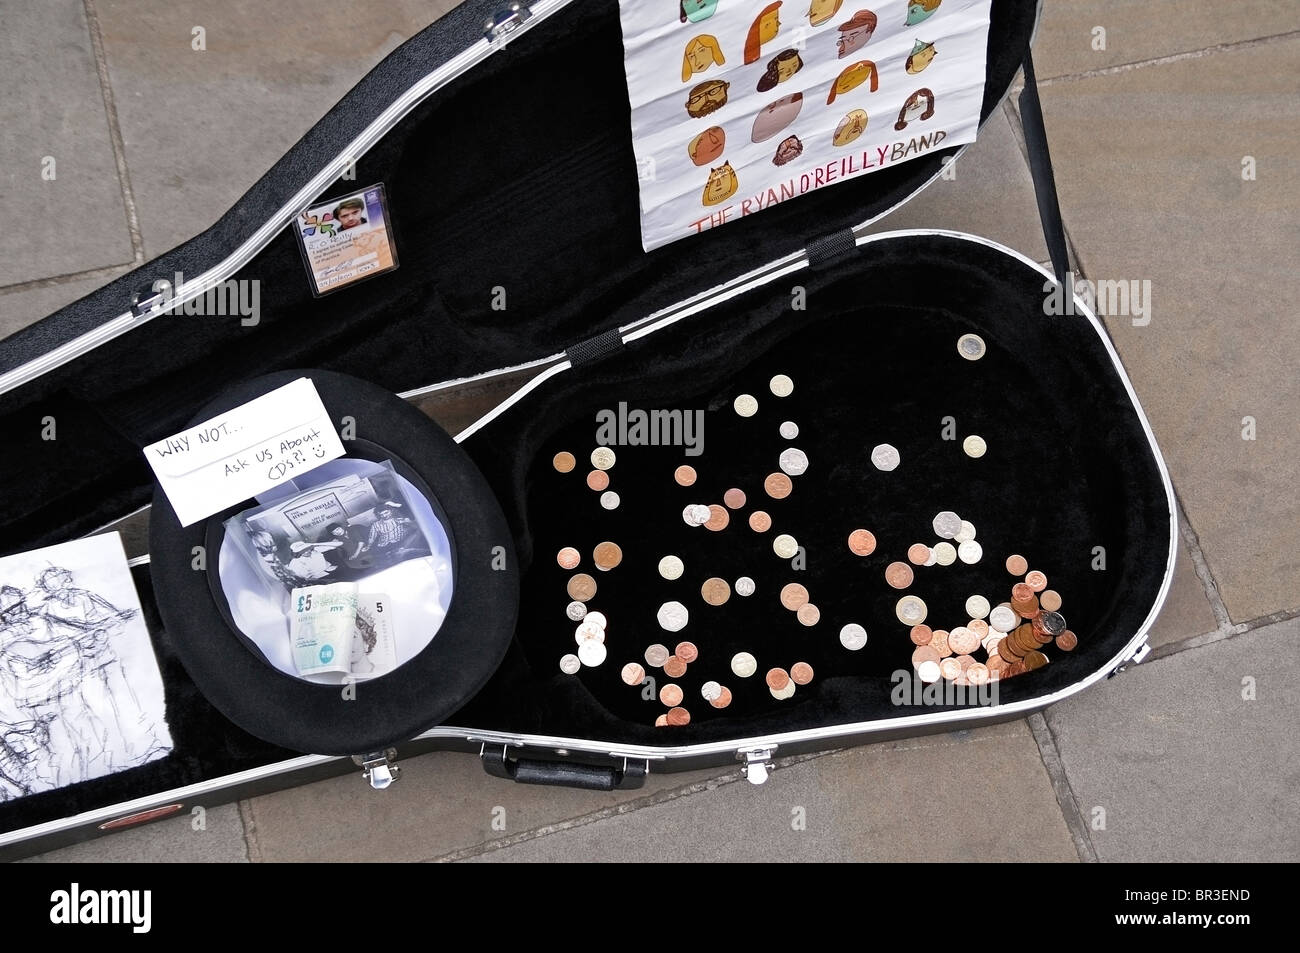 Buskers Guitar Case, Oxford, UK. - Stock Image